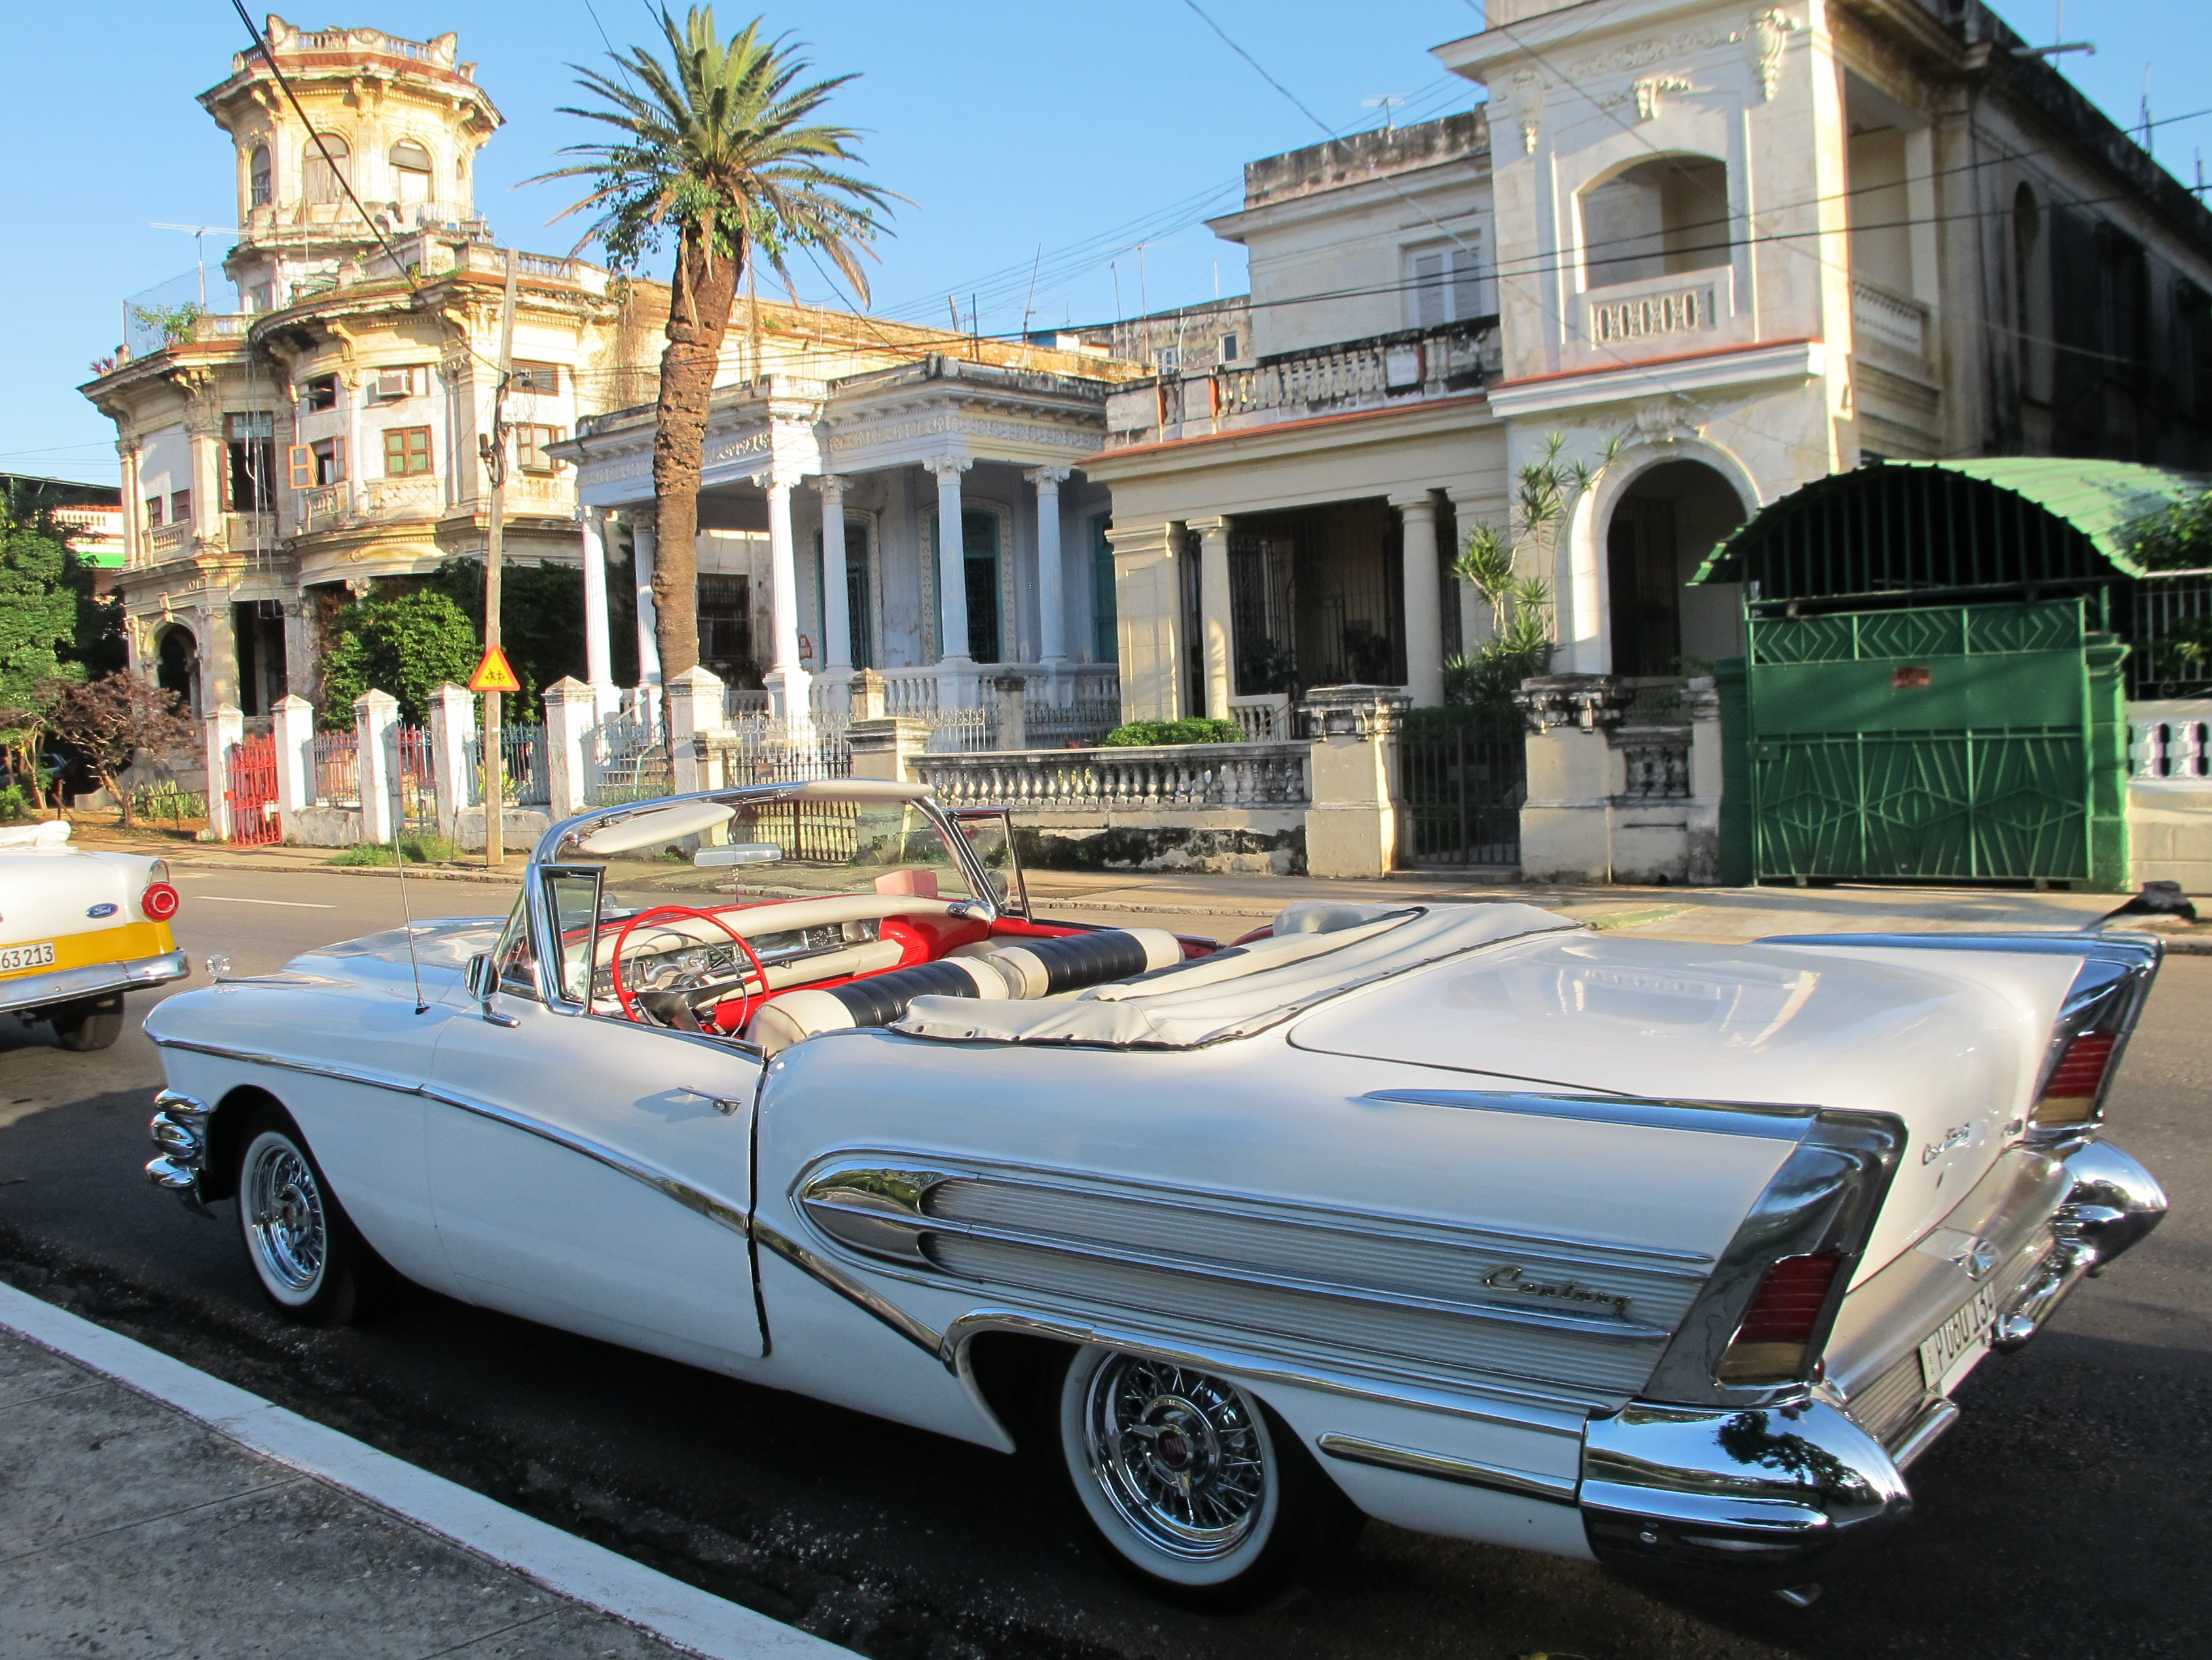 Cuba S Policy Of Travel